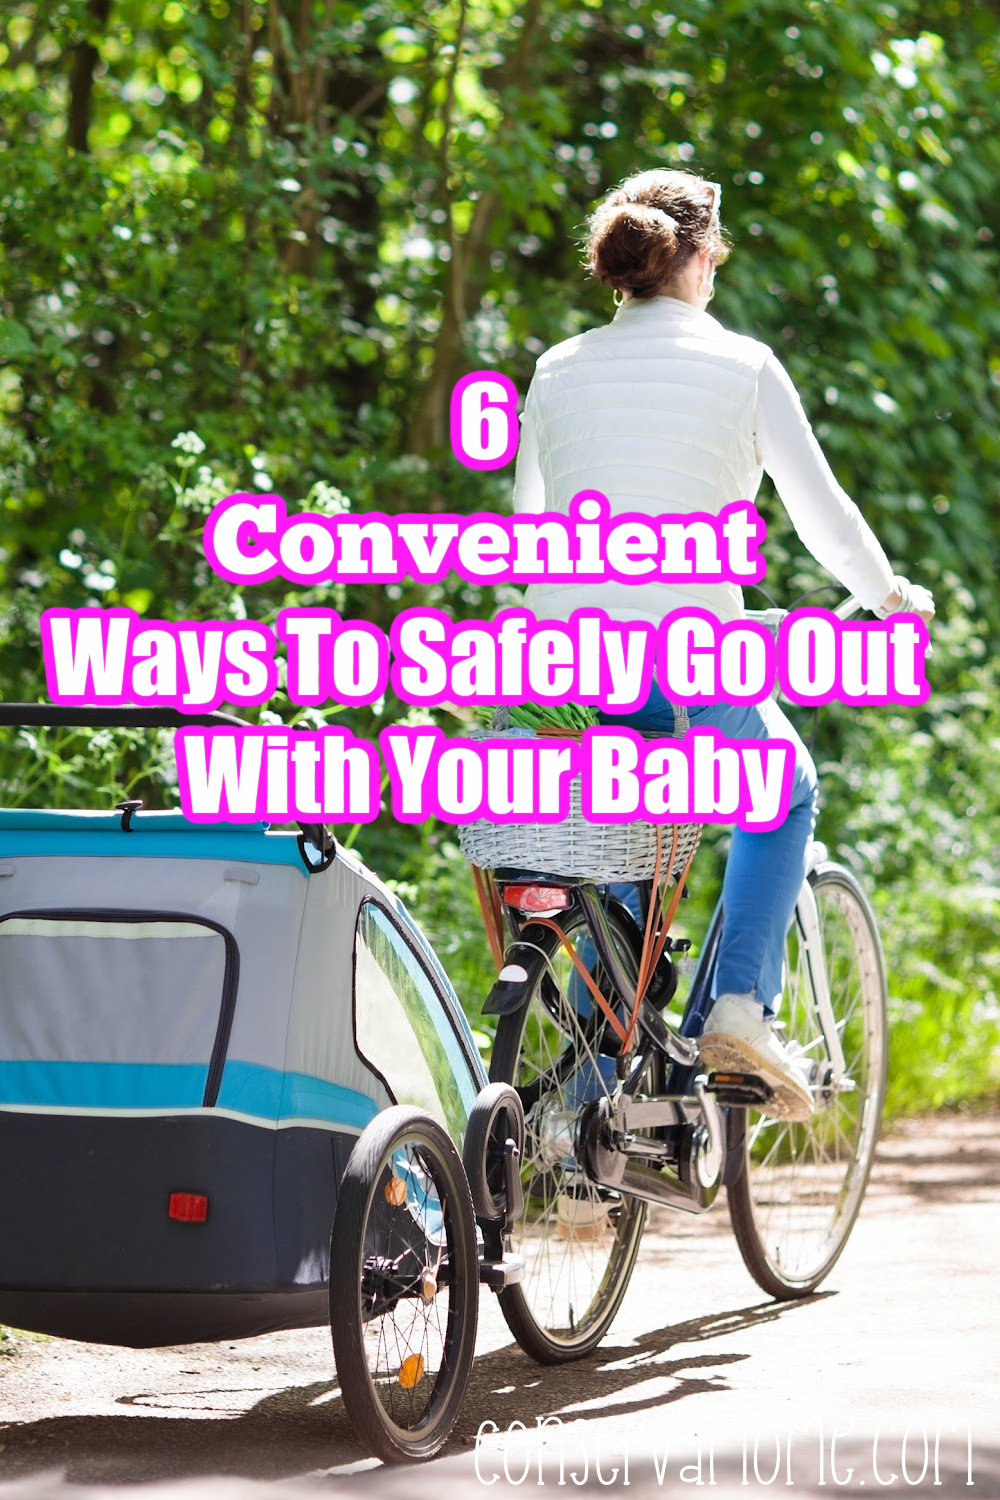 6 Convenient Ways To Safely Go Out With Your Baby